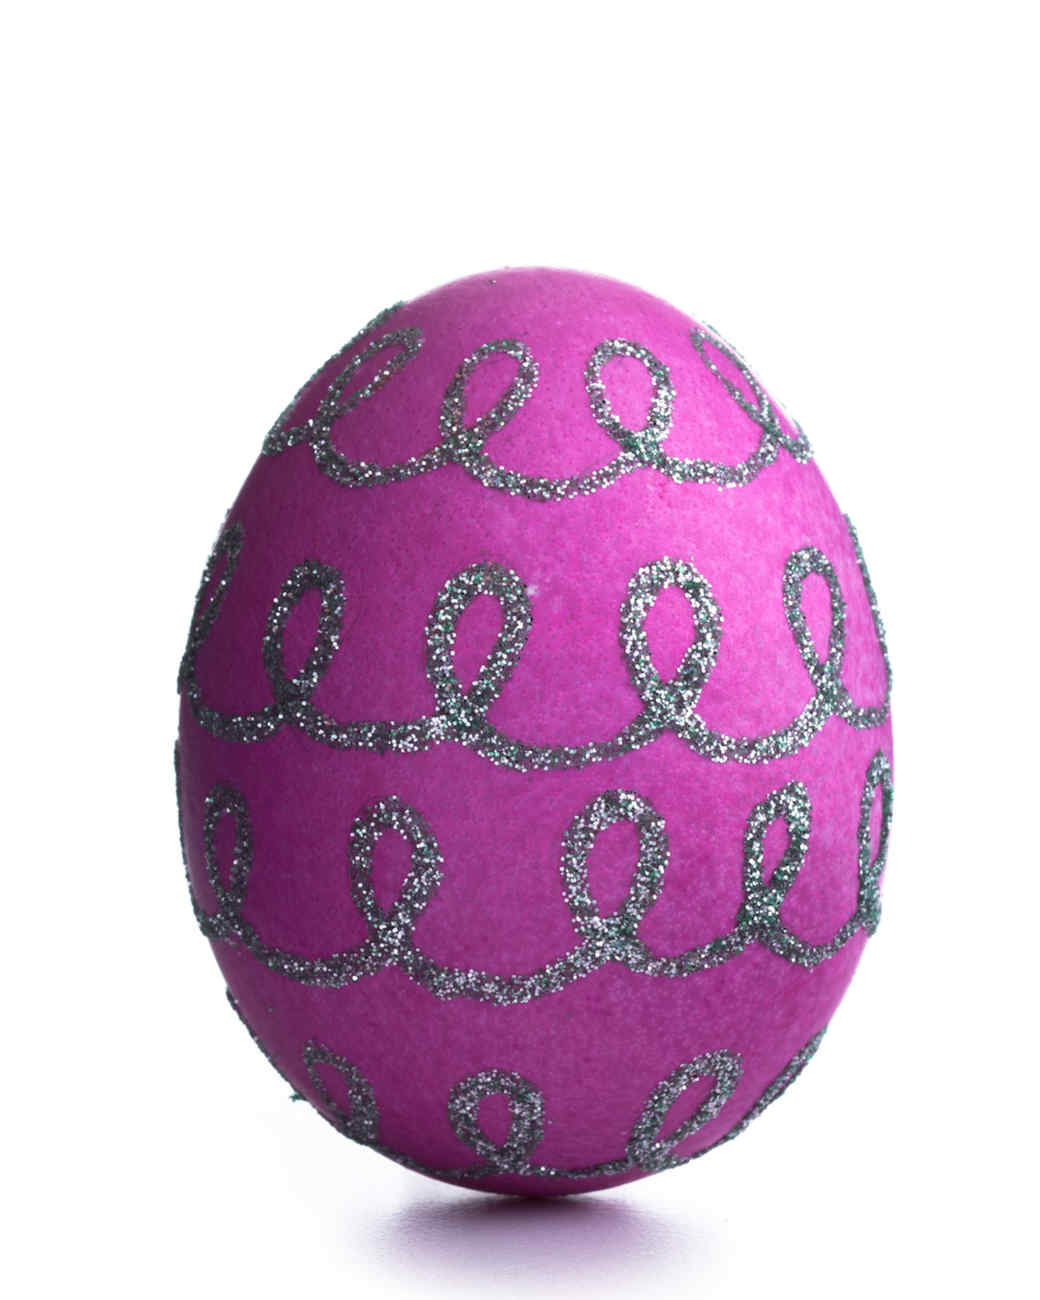 Embossed and Glittered Easter Egg Decorating Ideas ...